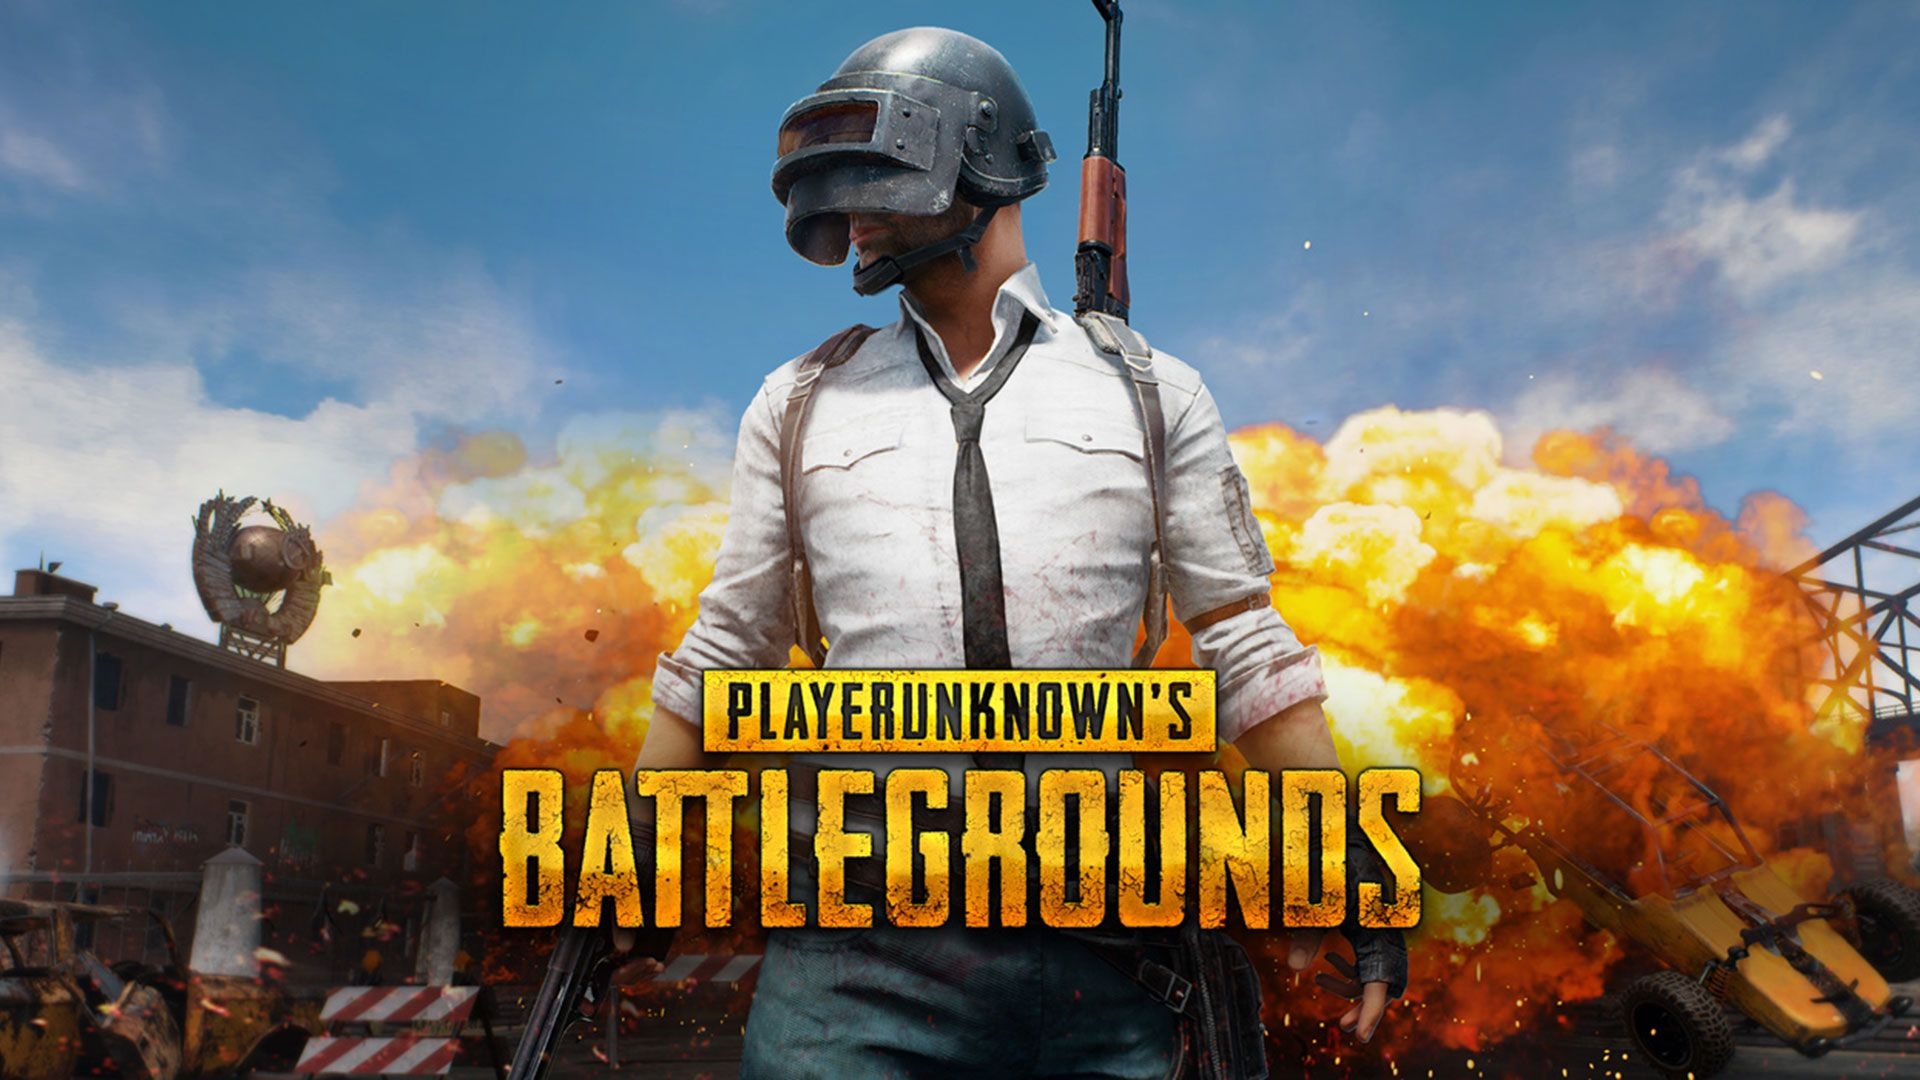 Pubg Wallpaper Hd Pic: Wallpapers Pubg Full Hd Em Papel De Parede 1080p HD